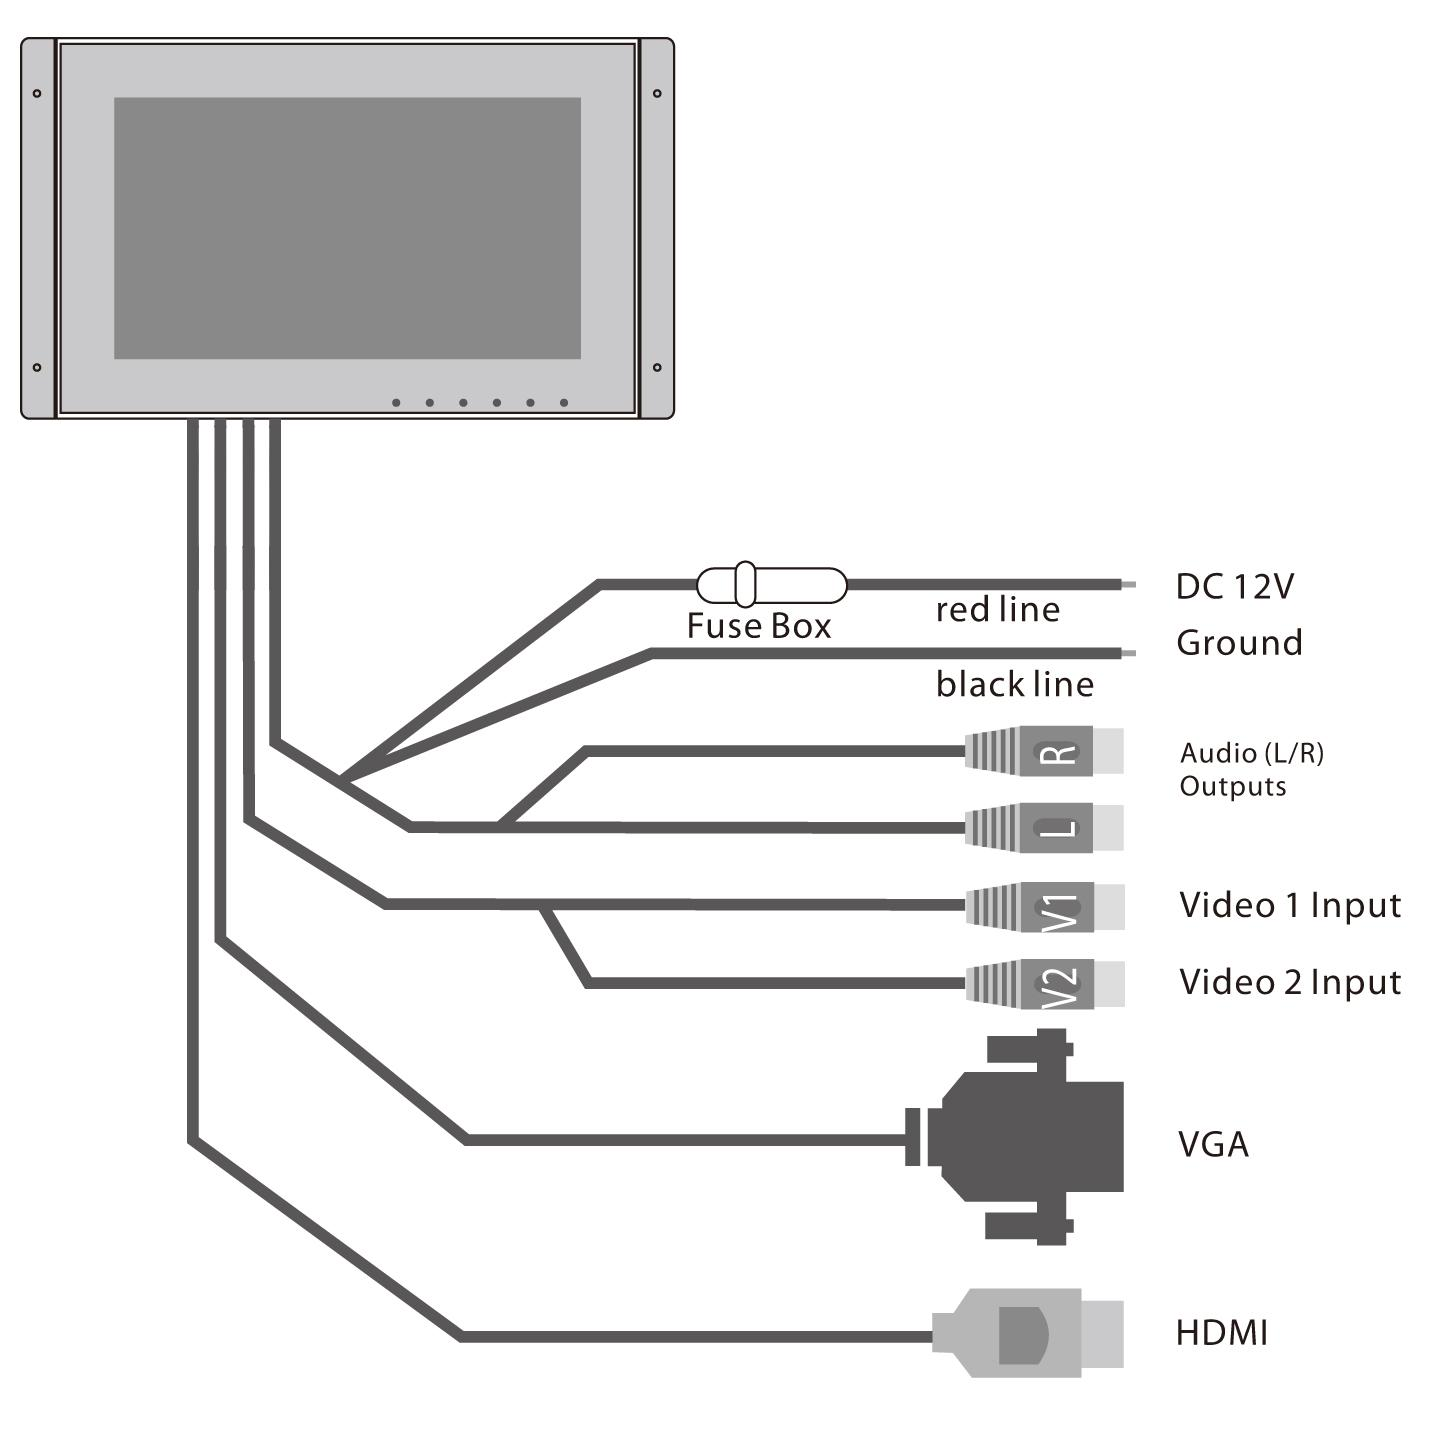 vga monitor cable wiring diagram 3 phase submersible pump control panel pyle 15 video display screen full hd 1080p